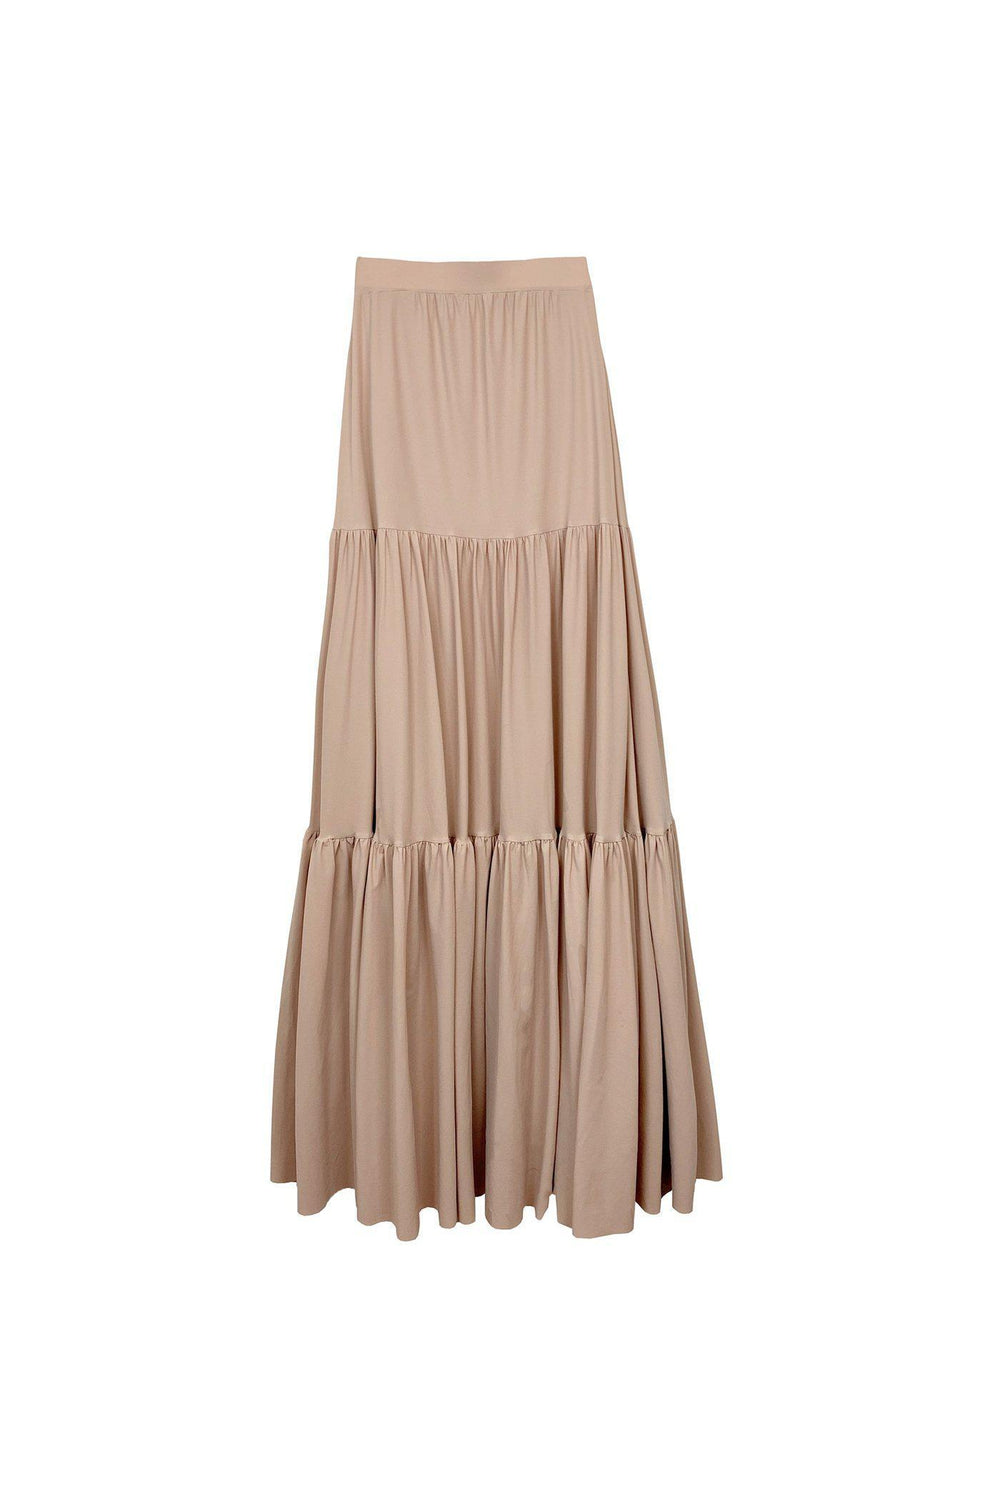 RYAN ROCHE Prairie stretch ruffle skirt